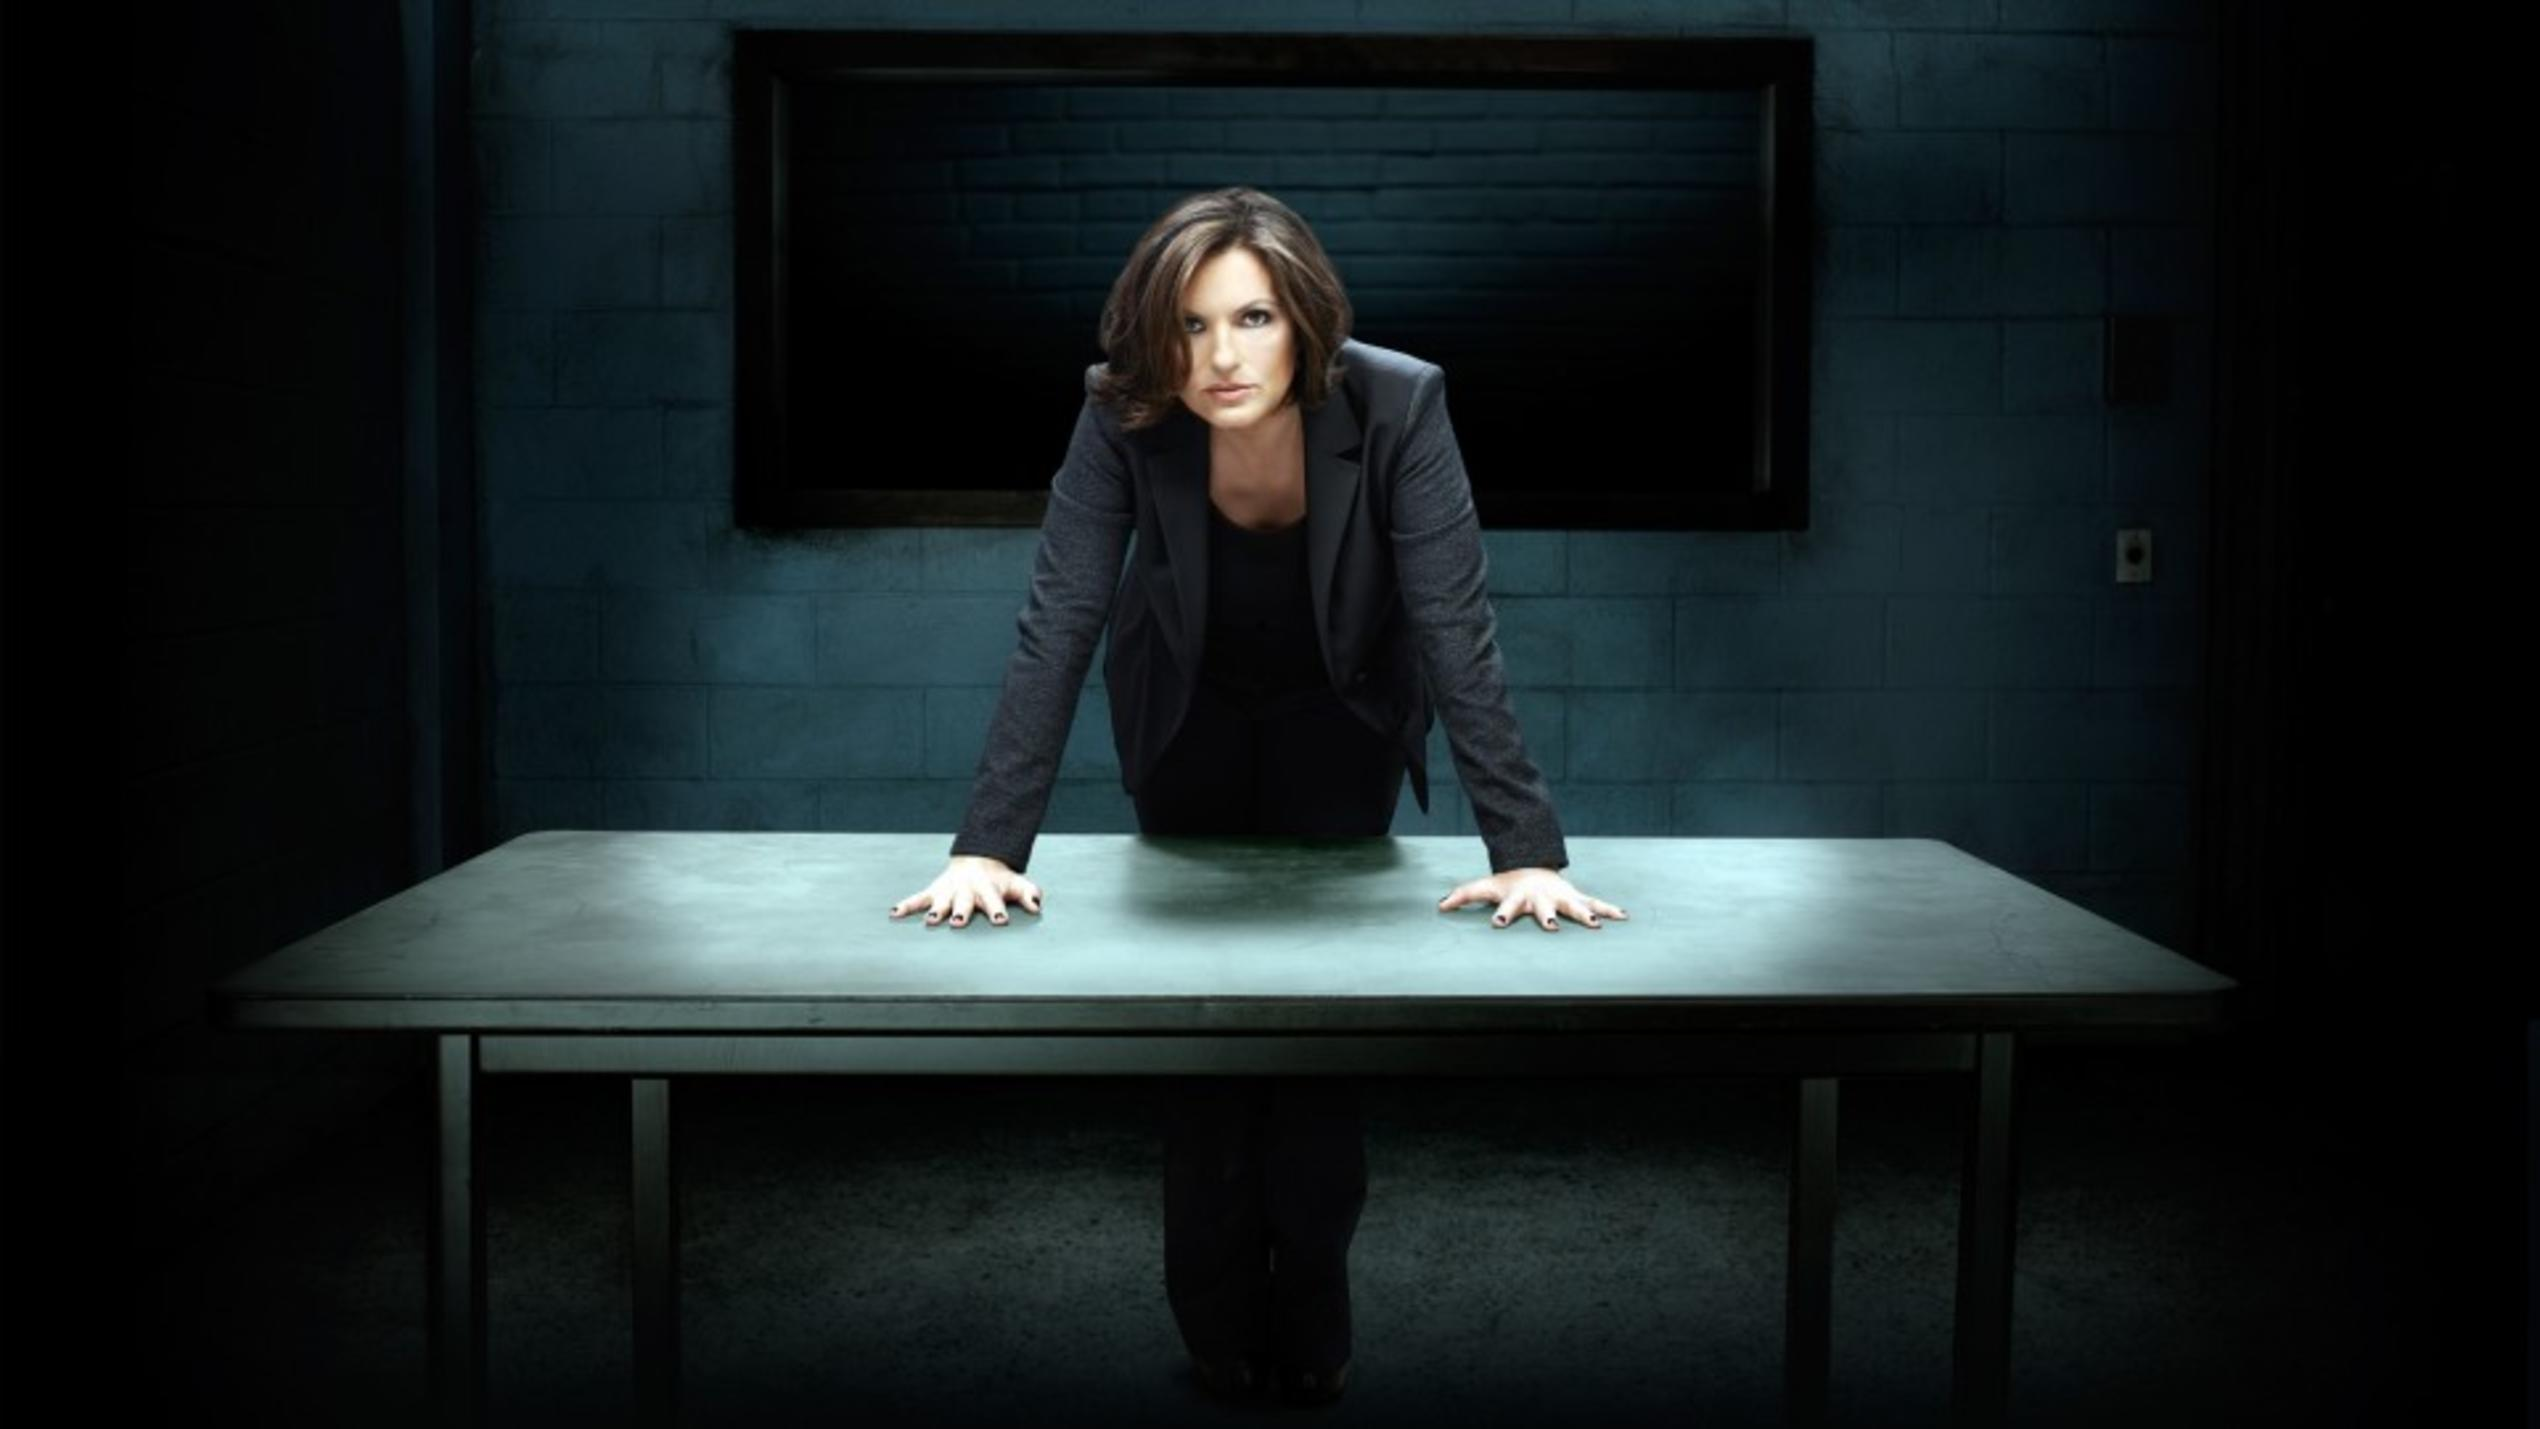 Law & Order: Special Victims Unit: Primetime-Dramaserie der USA